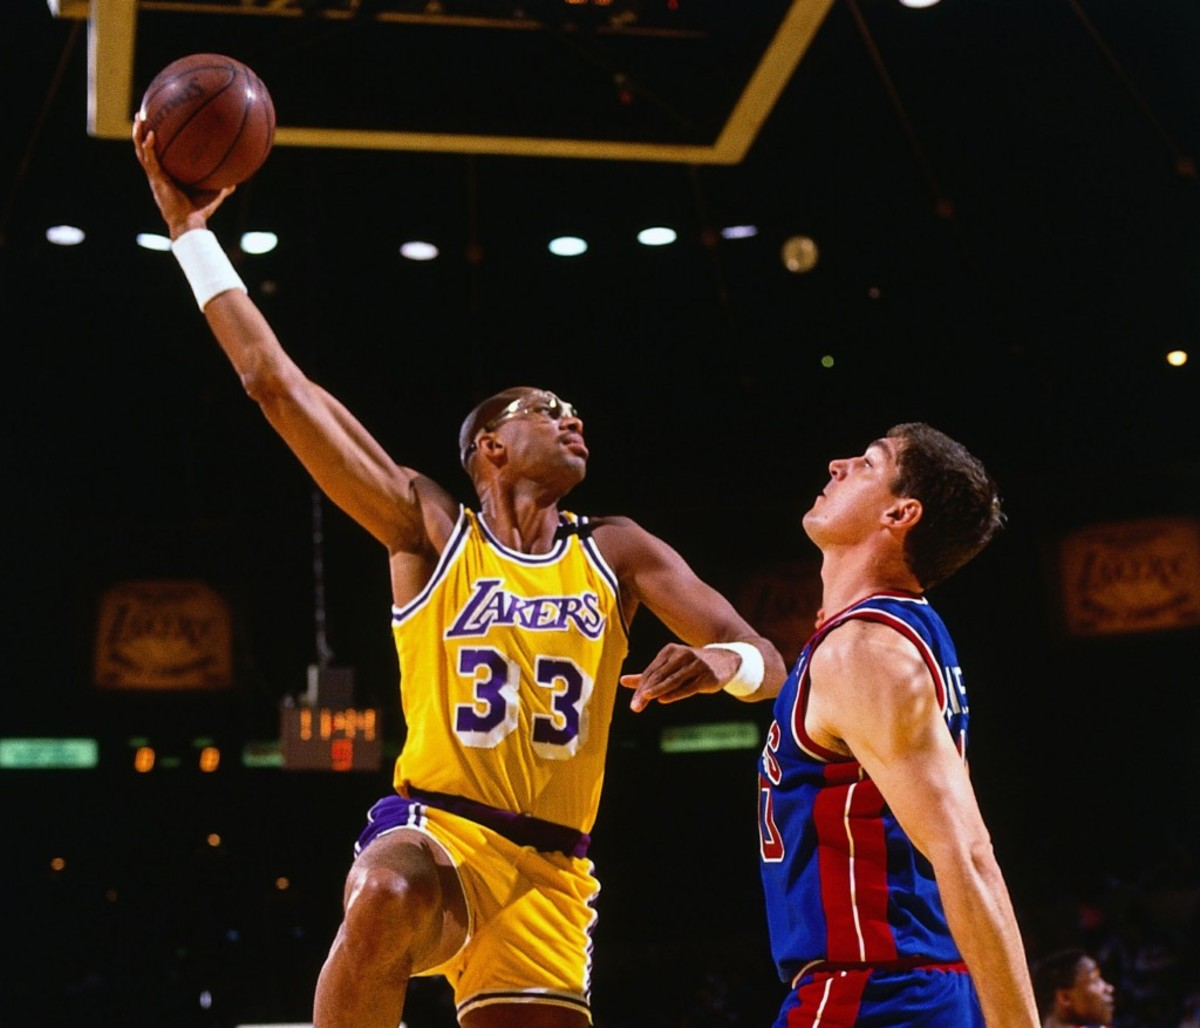 INGLEWOOD, CA - 1988:  Kareem Abdul-Jabbar #33 of the Los Angeles Lakers goes up for a sky hook against the Bill Laimbeer #40 of the Detroit Pistons during an NBA game circa 1988 at the Forum in Inglewood, California.  NOTE TO USER: User expressly acknowledges and agrees that, by downloading and/or using this Photograph, user is consenting to the terms and conditions of the Getty Images License Agreement.  Mandatory Copyright Notice: Copyright 1988 NBAE (Photo by Andrew D. Bernstein/NBAE via Getty Images)